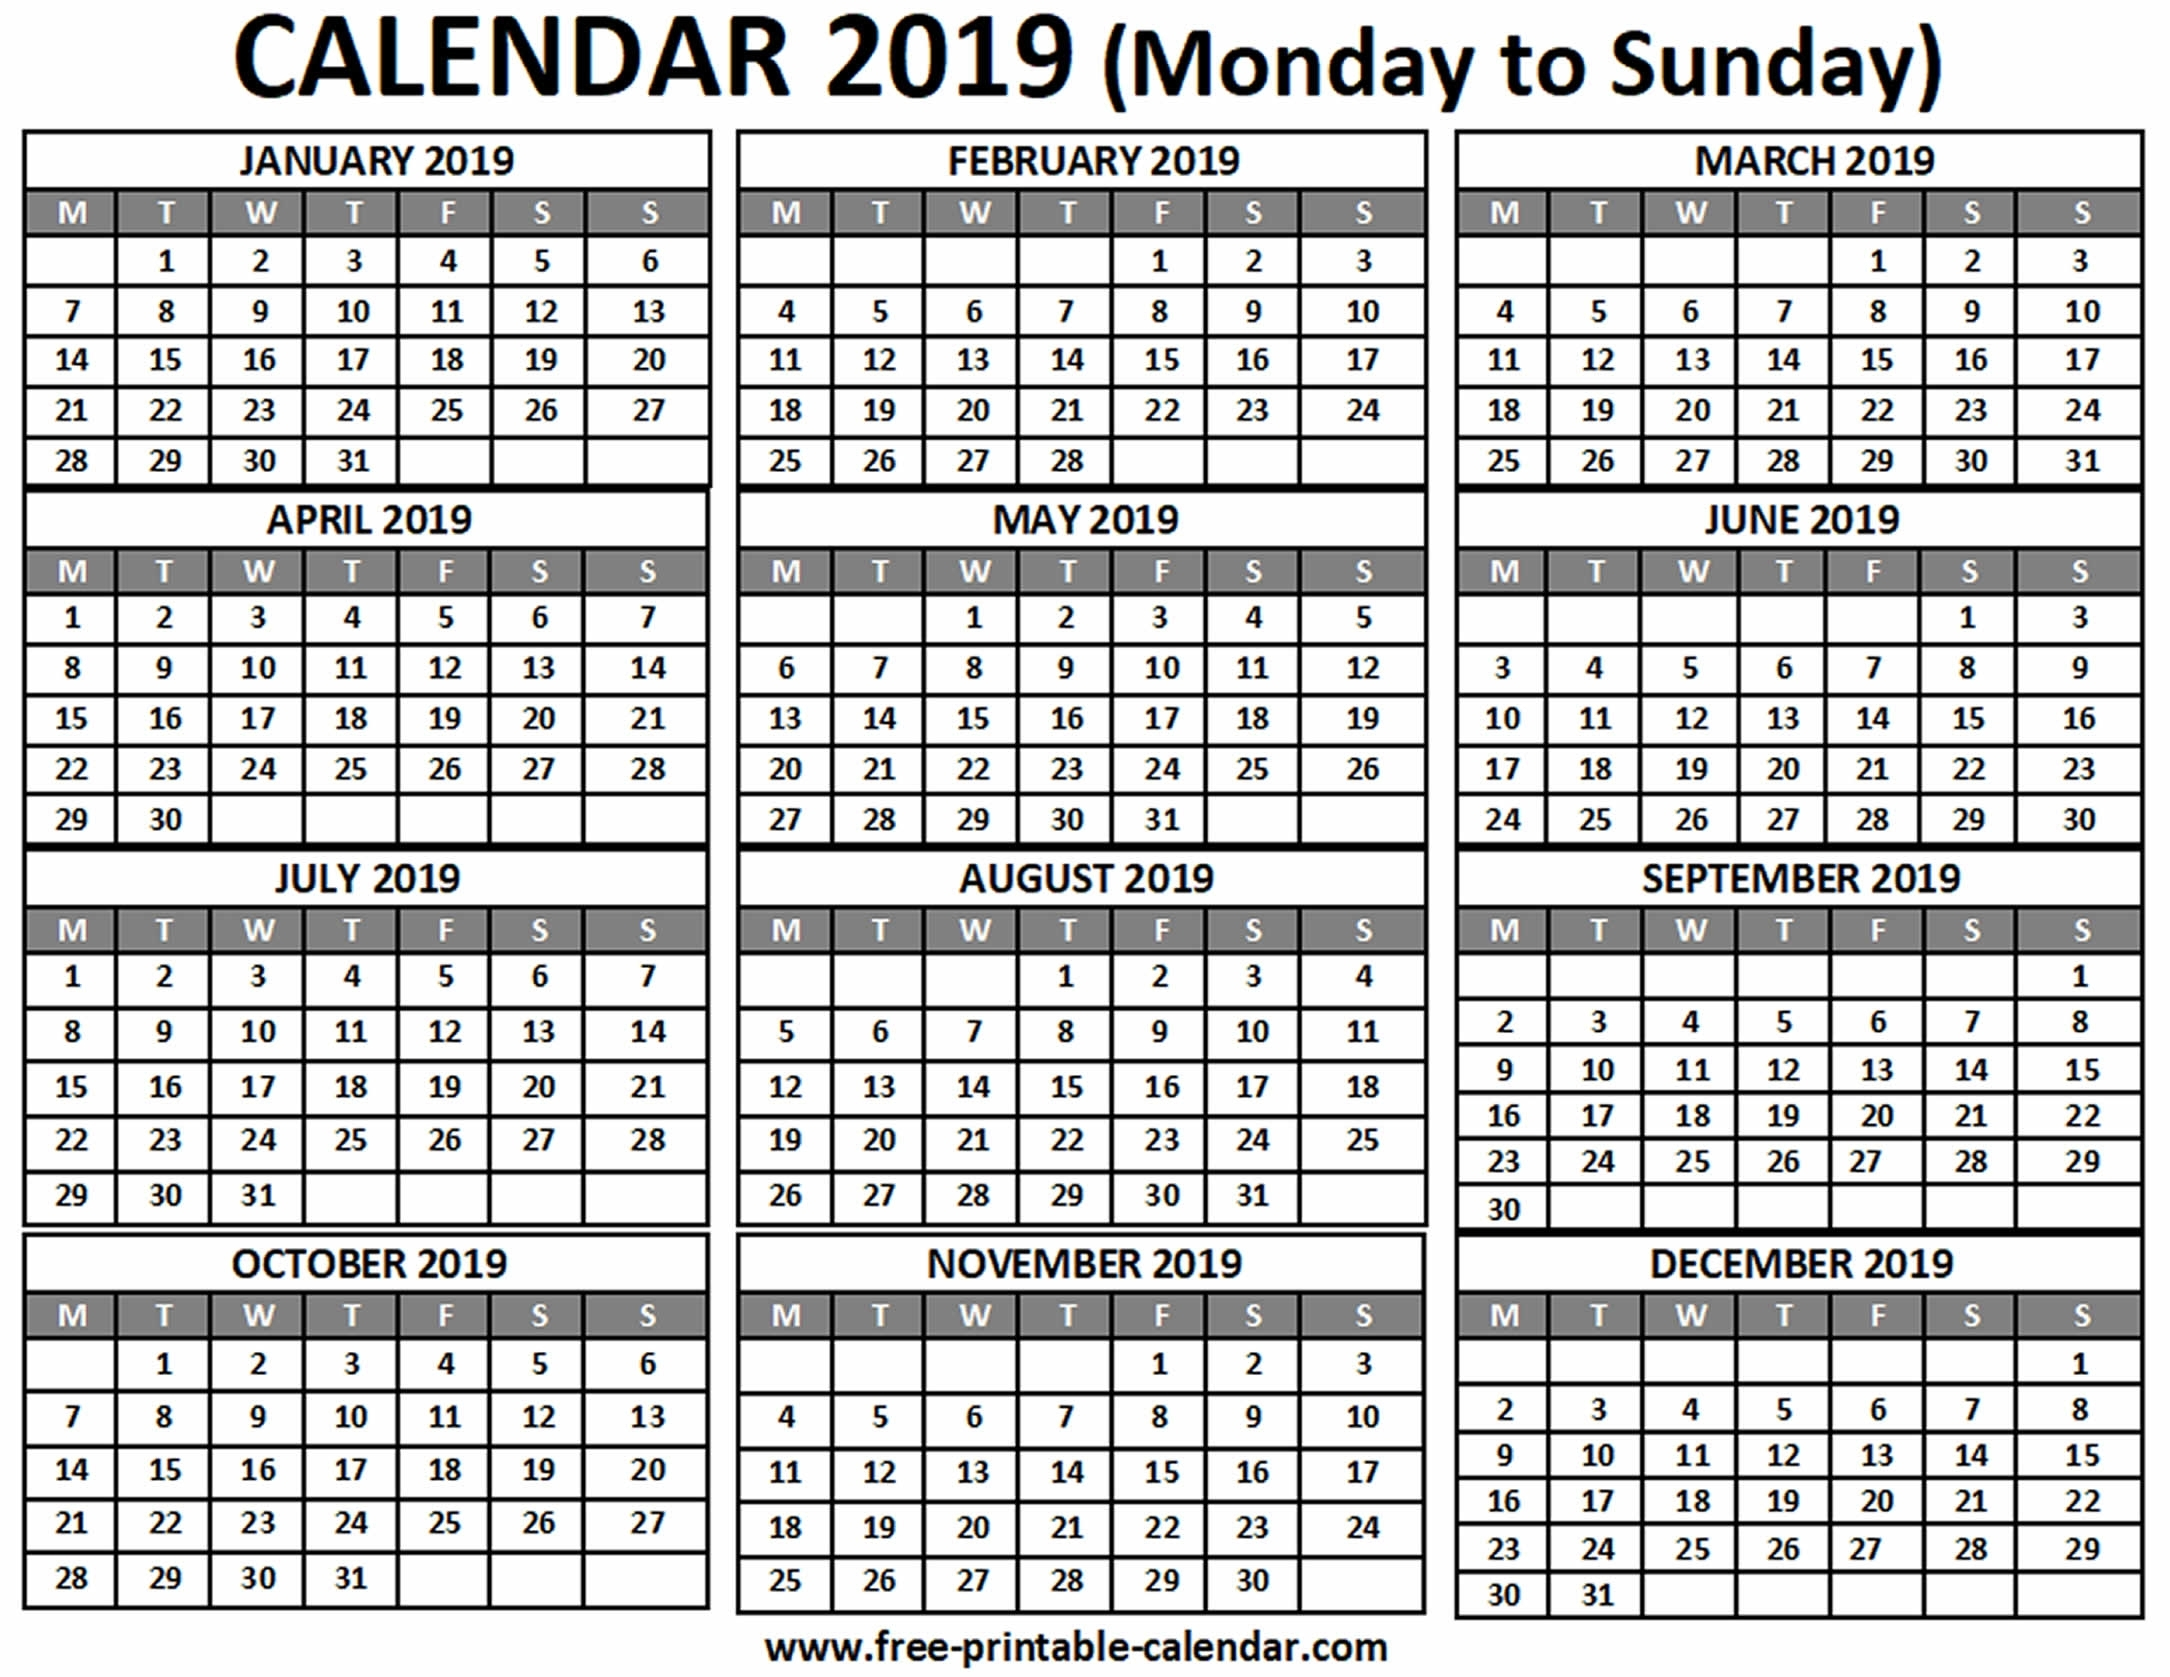 2019 Calendar - Free-Printable-Calendar regarding Calendar 2019 Monday To Sunday